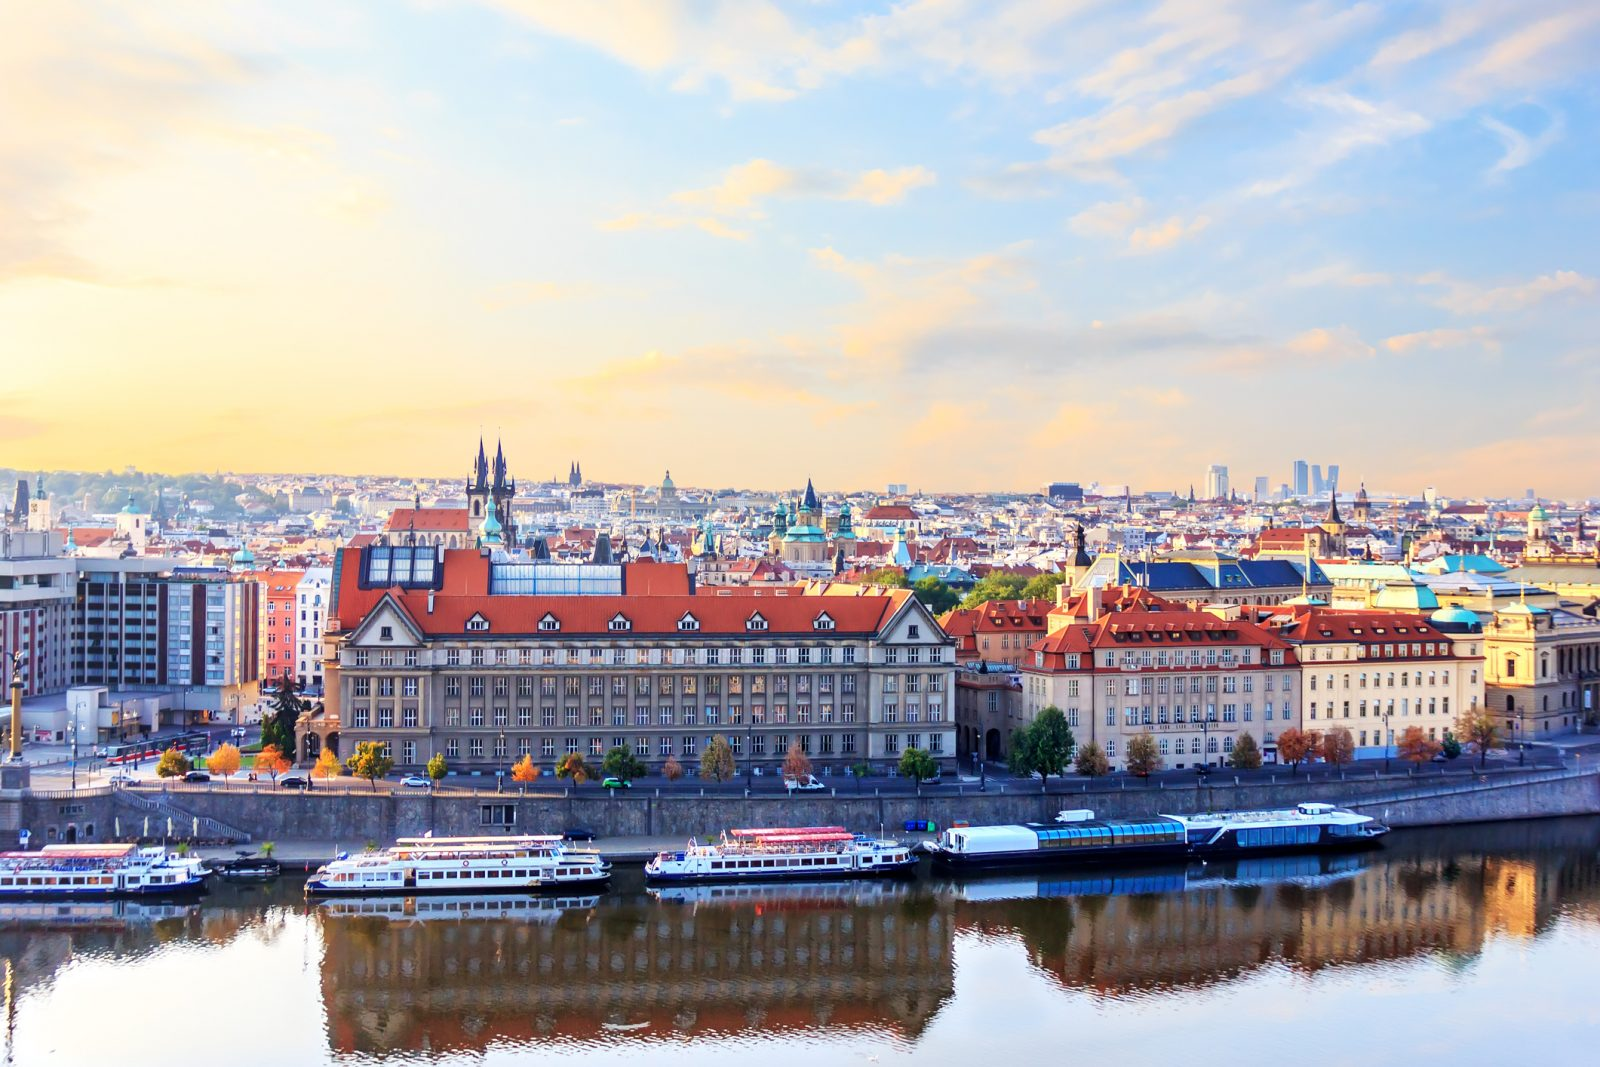 The top universities in the Czech Republic revealed in a new global ranking